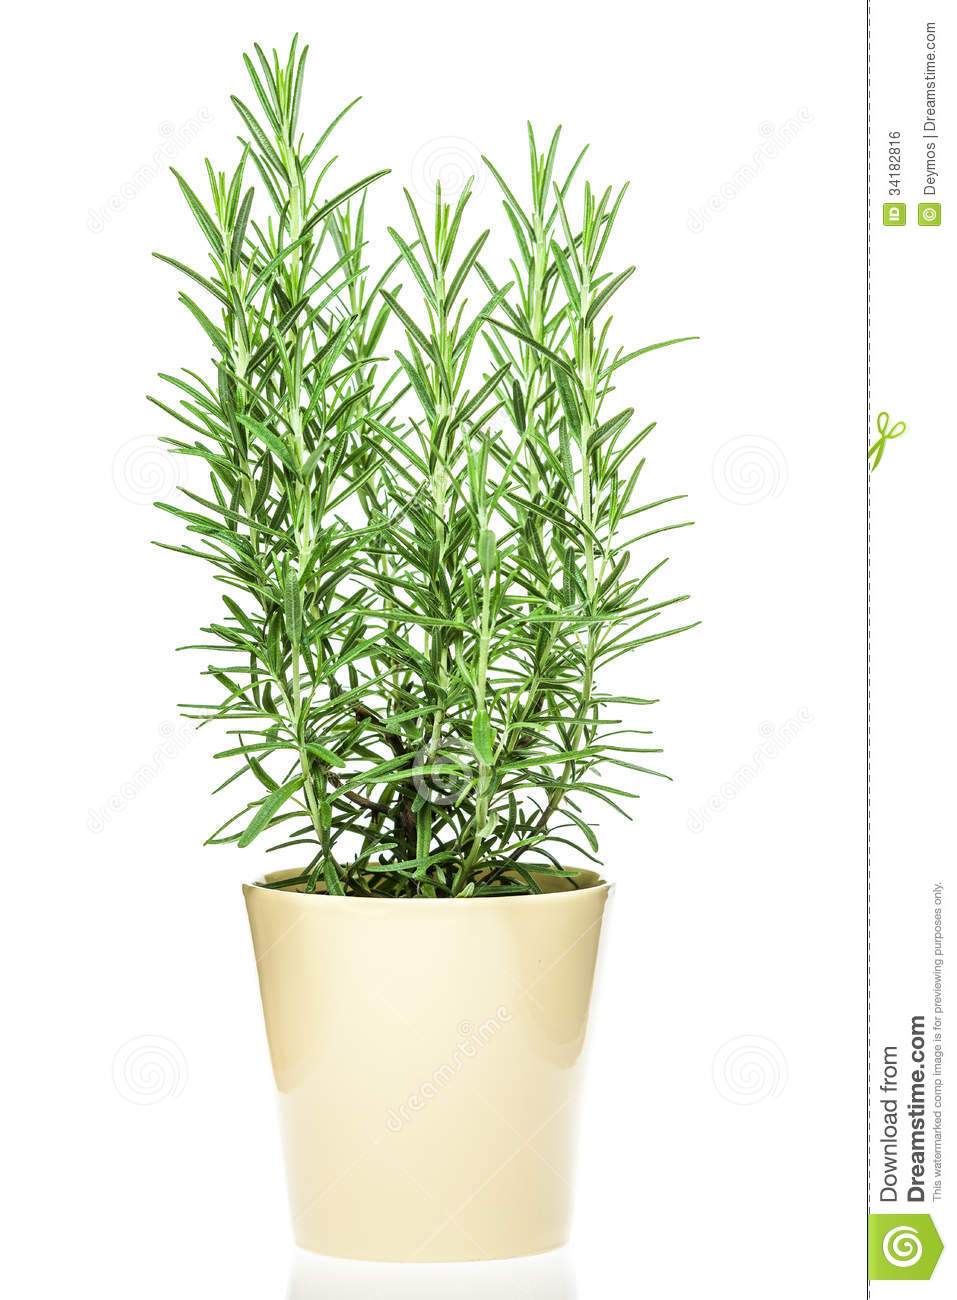 rosemary plant in a light yellow pot royalty free stock image